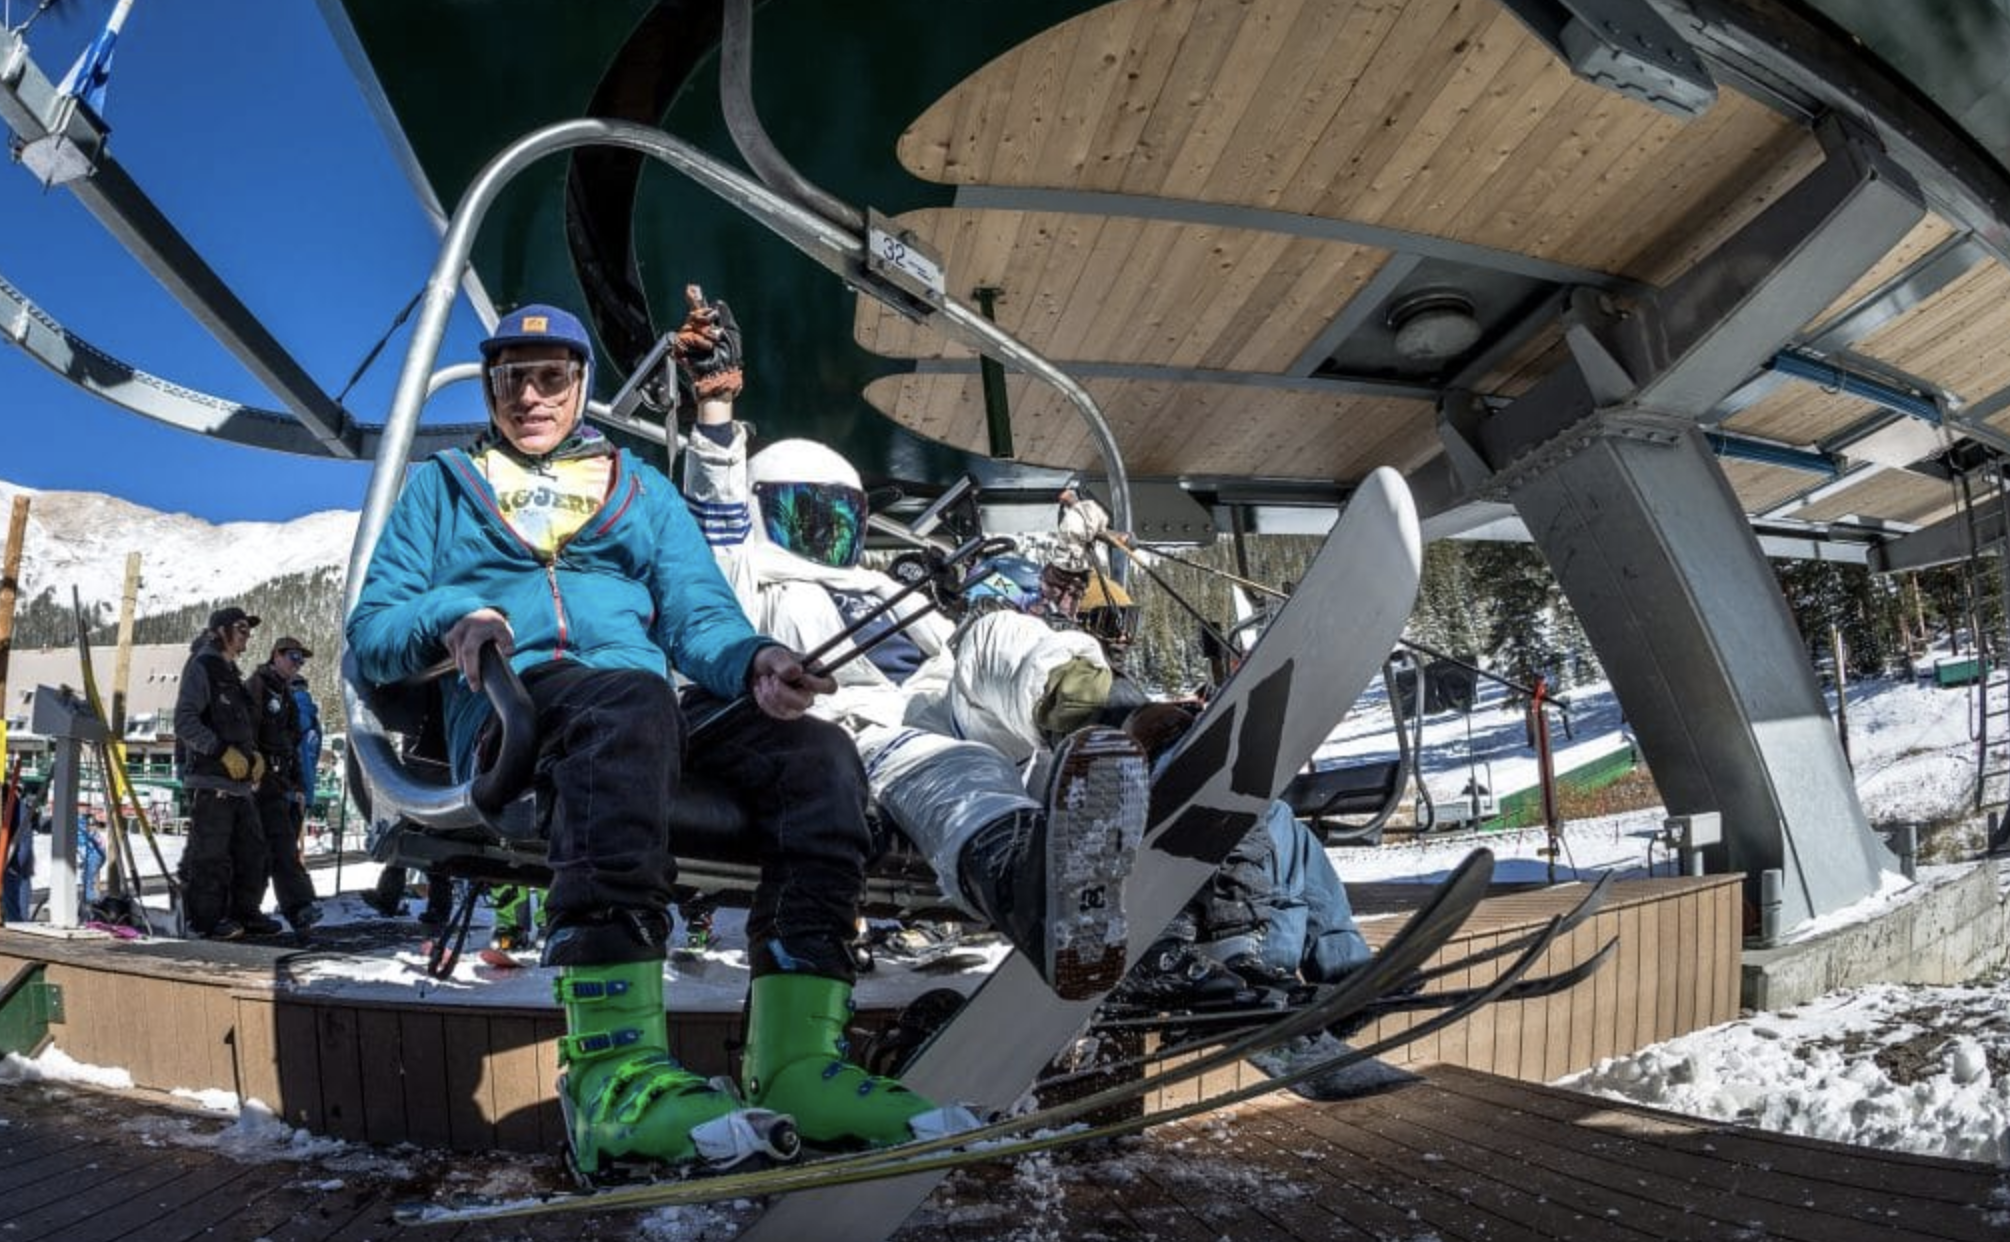 SEE: Full list of opening dates for Colorado ski resorts